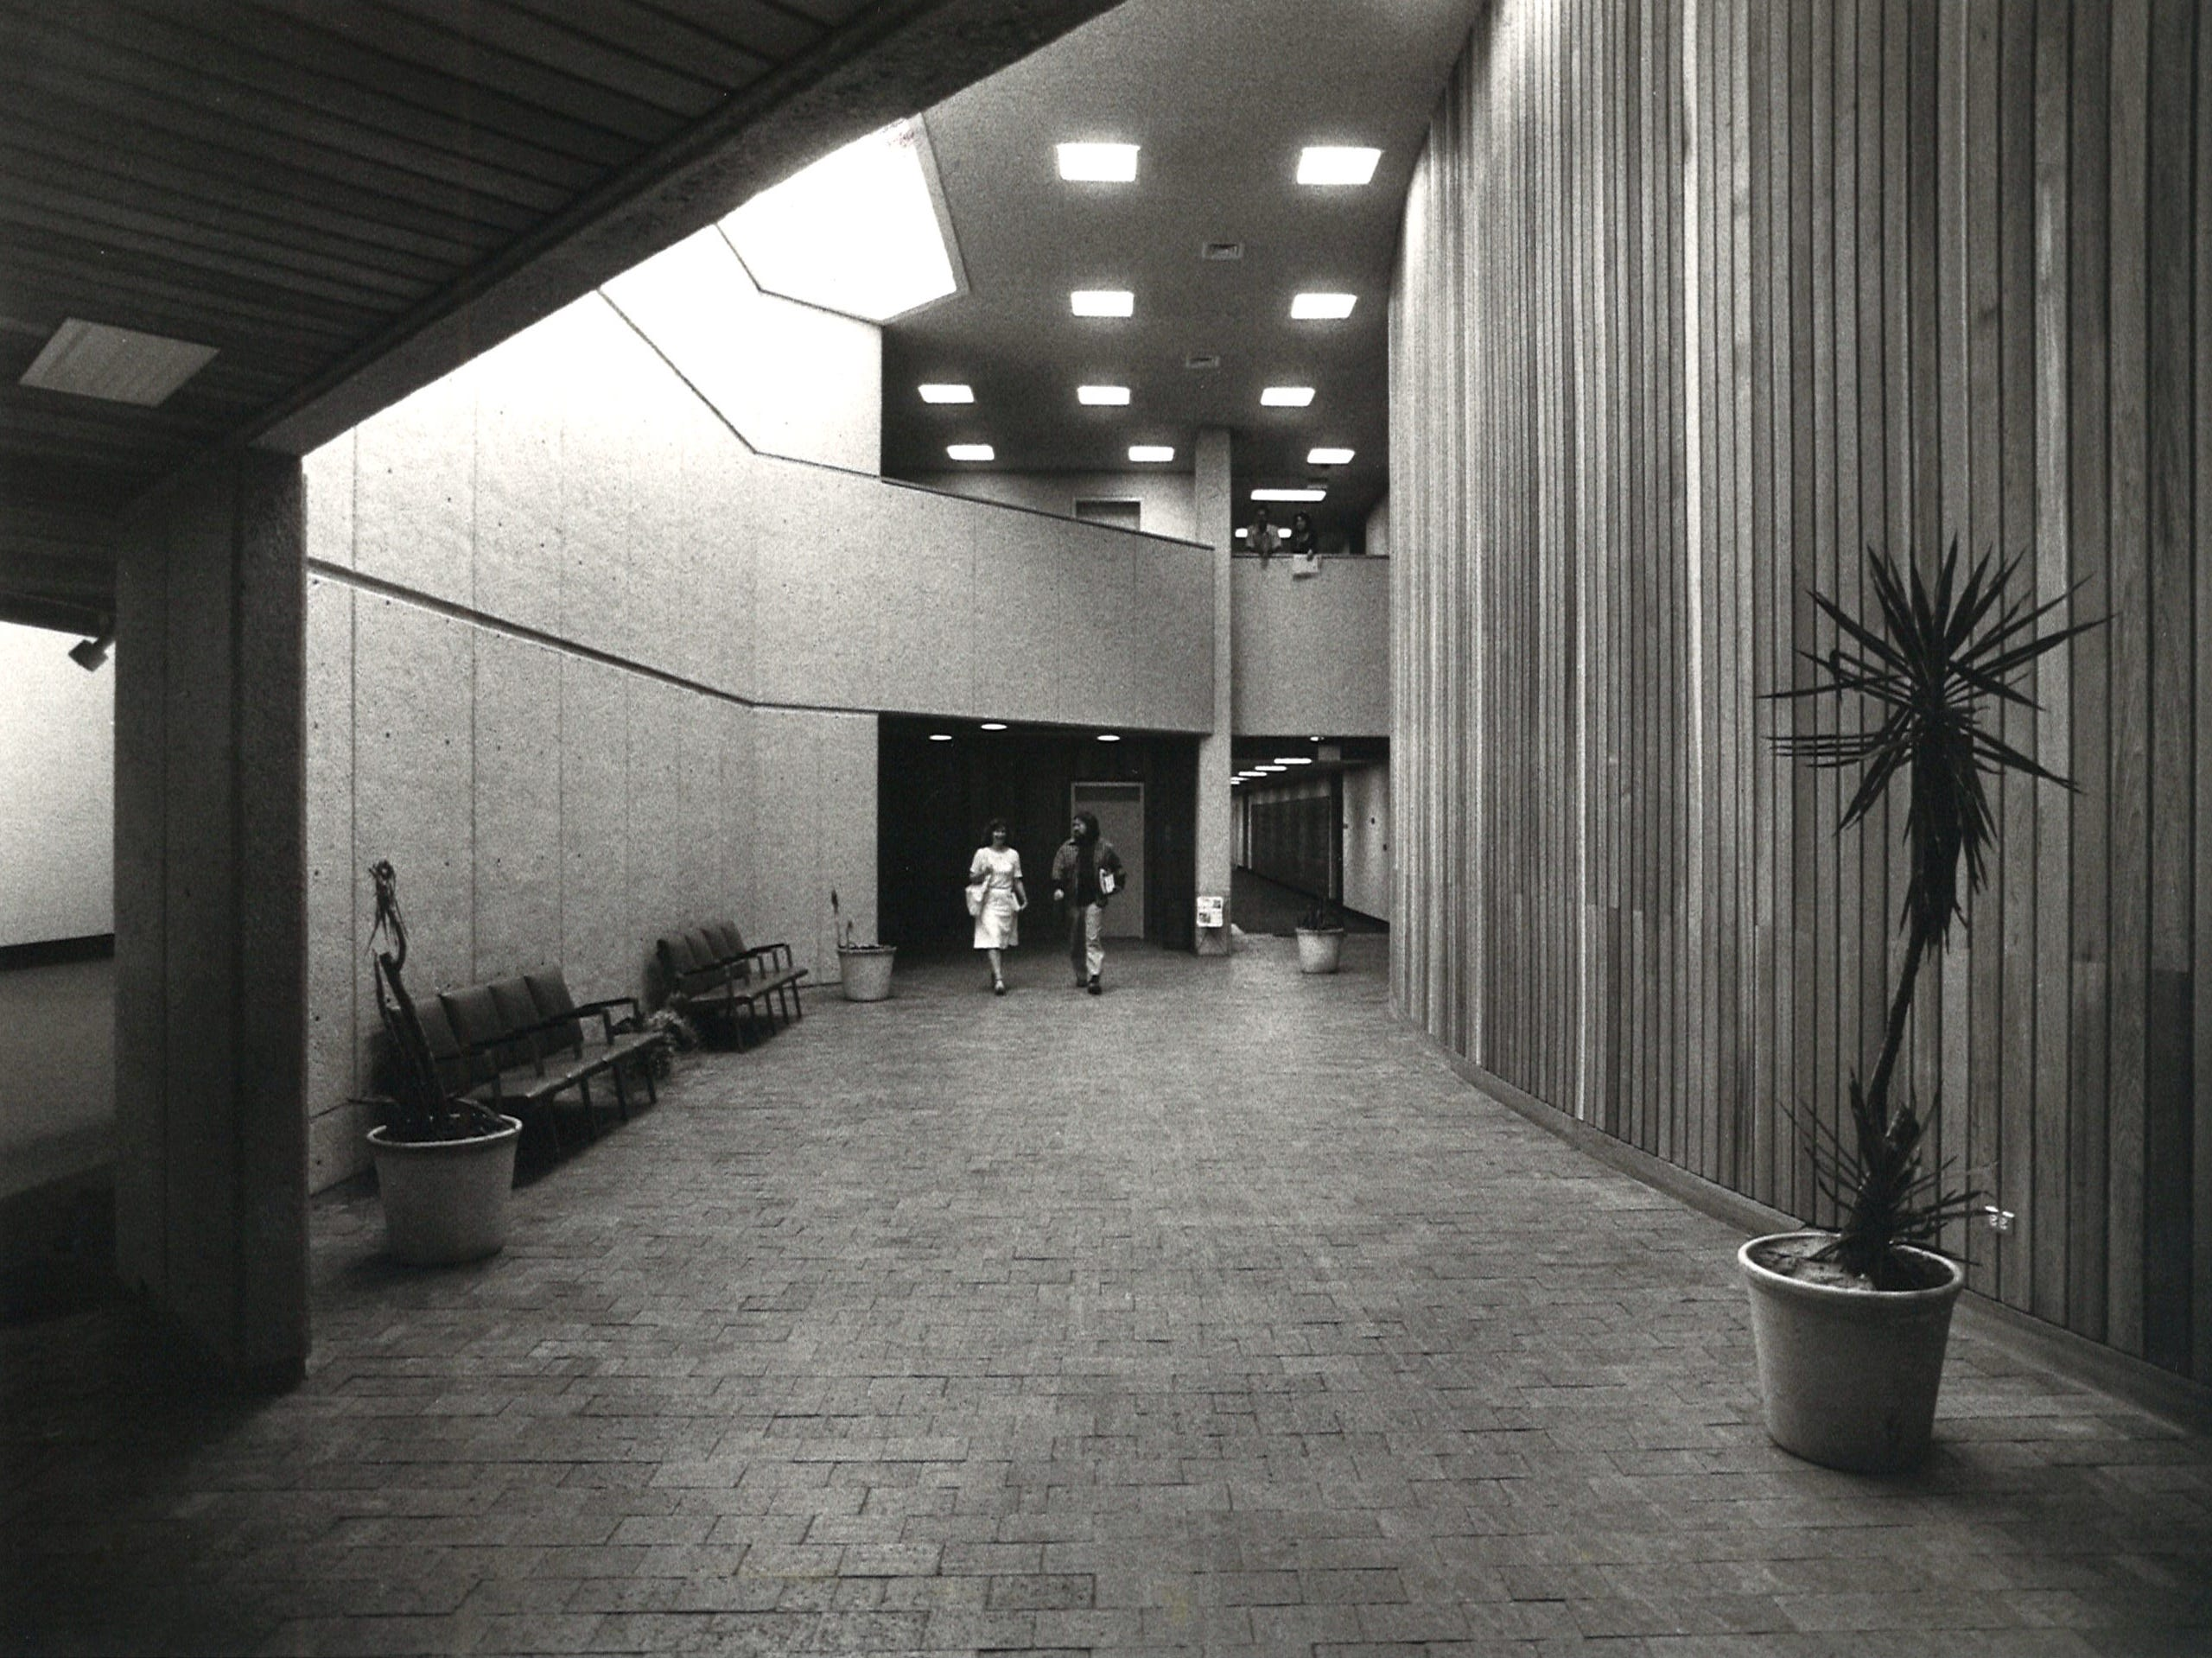 The lobby of the Center of the Arts building on Corpus Christi State University campus in March 1979. Gallery space is on the left and theater space on the right.